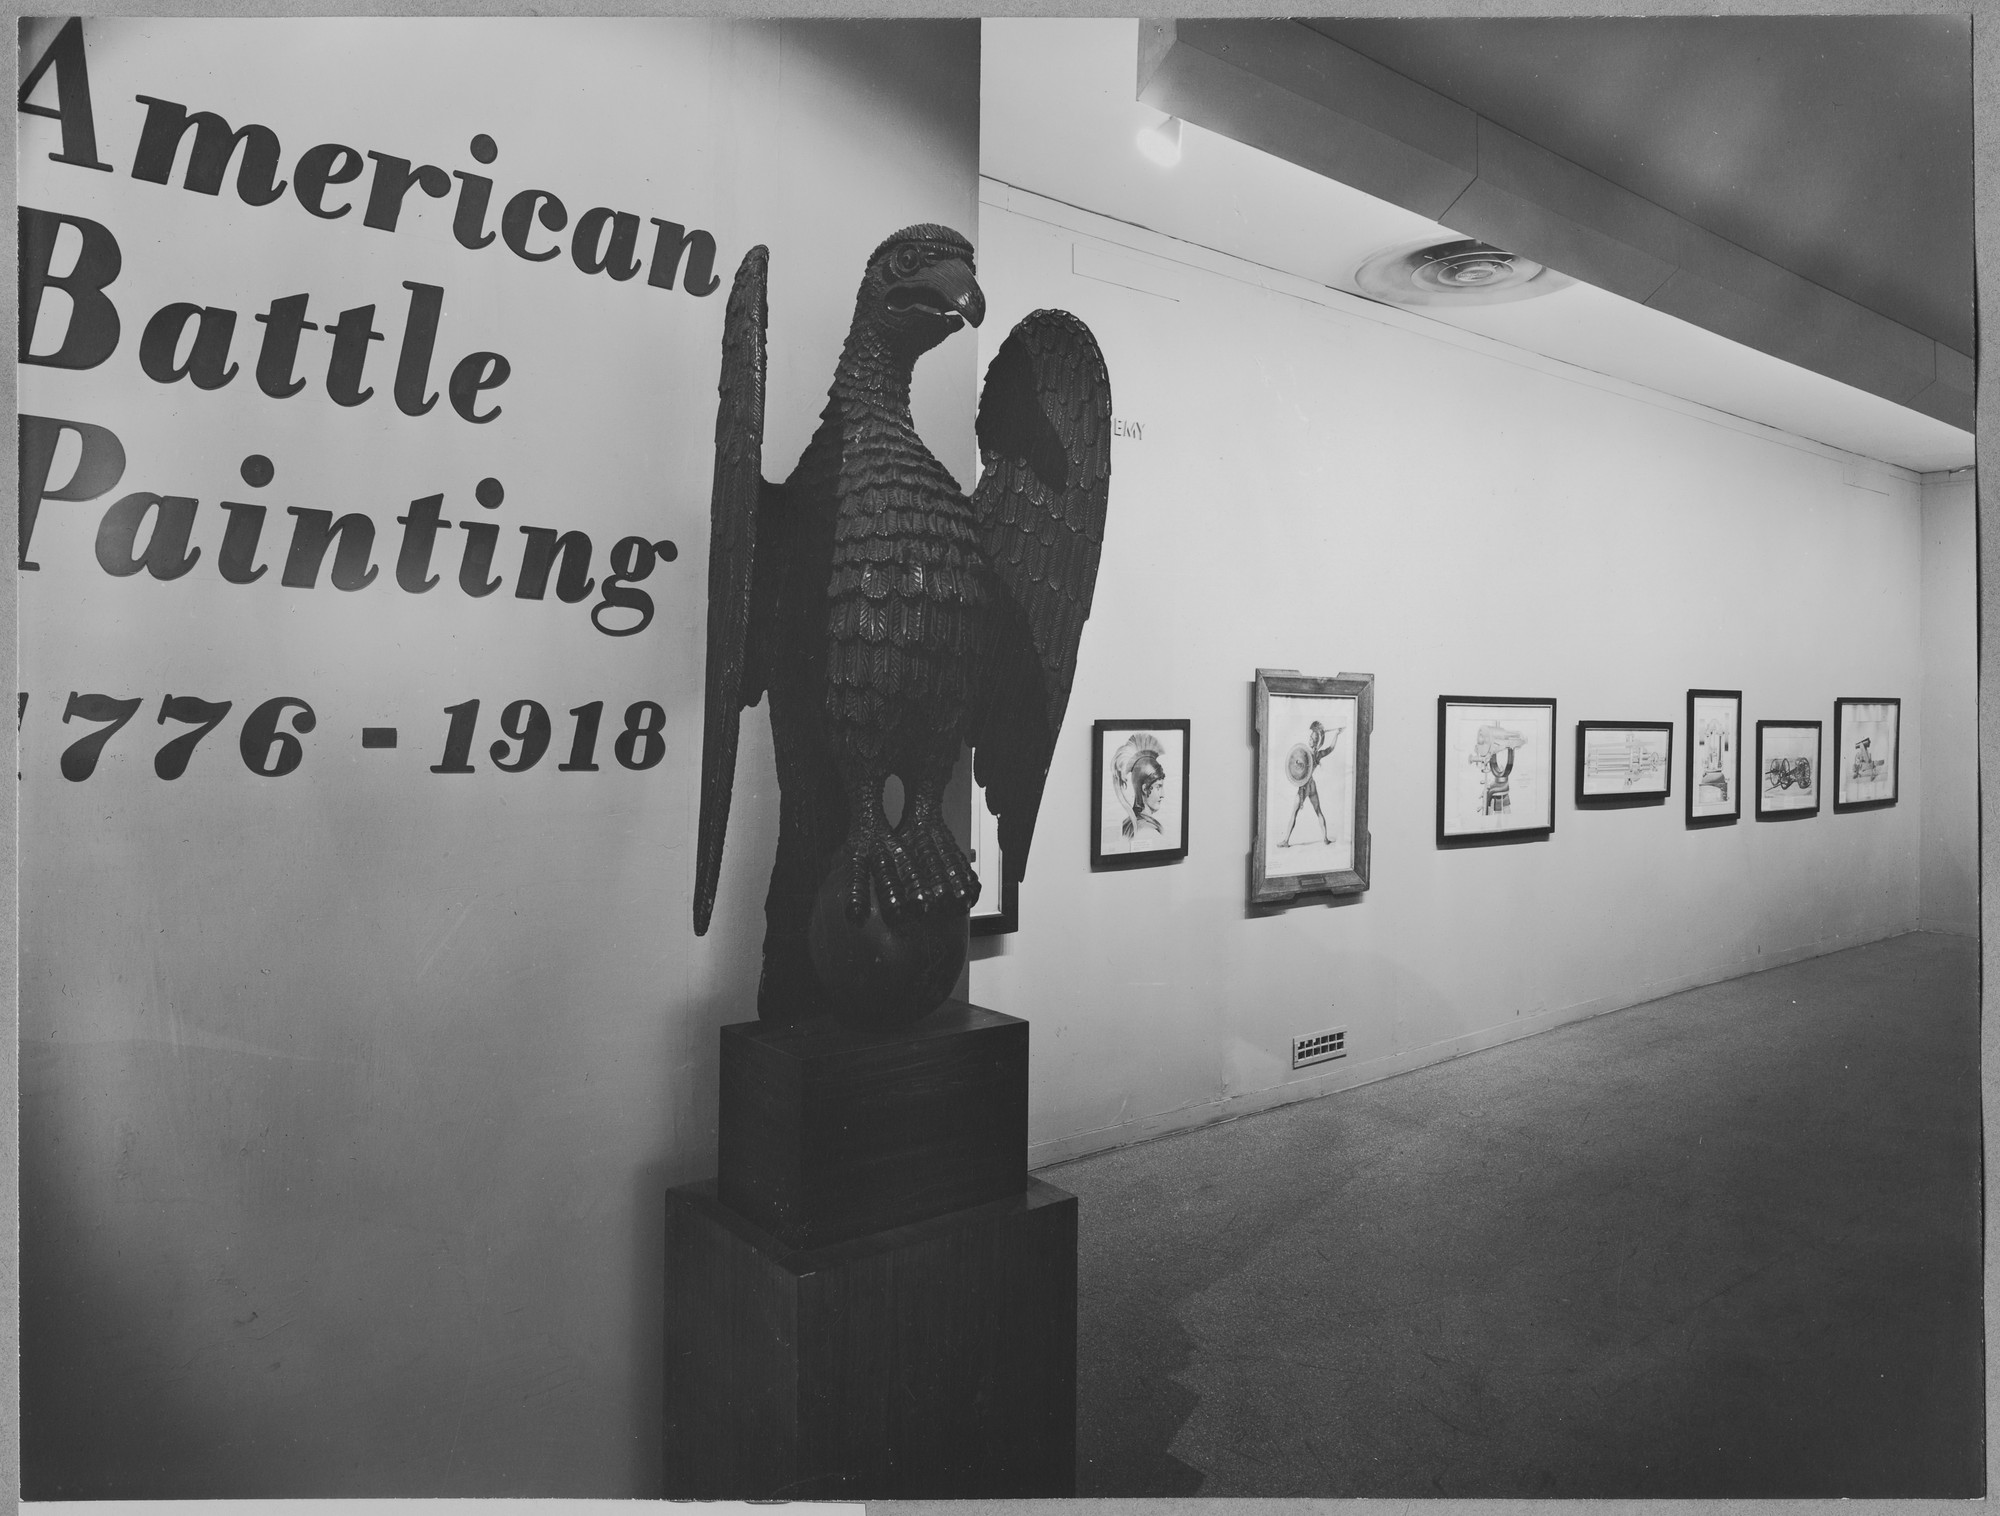 "Installation view of the exhibition,""American Battle Painting 1776-1918."" September 26, 1944–November 12, 1944. Photographic Archive. The Museum of Modern Art Archives, New York. IN261.1. Photograph by Soichi Sunami."